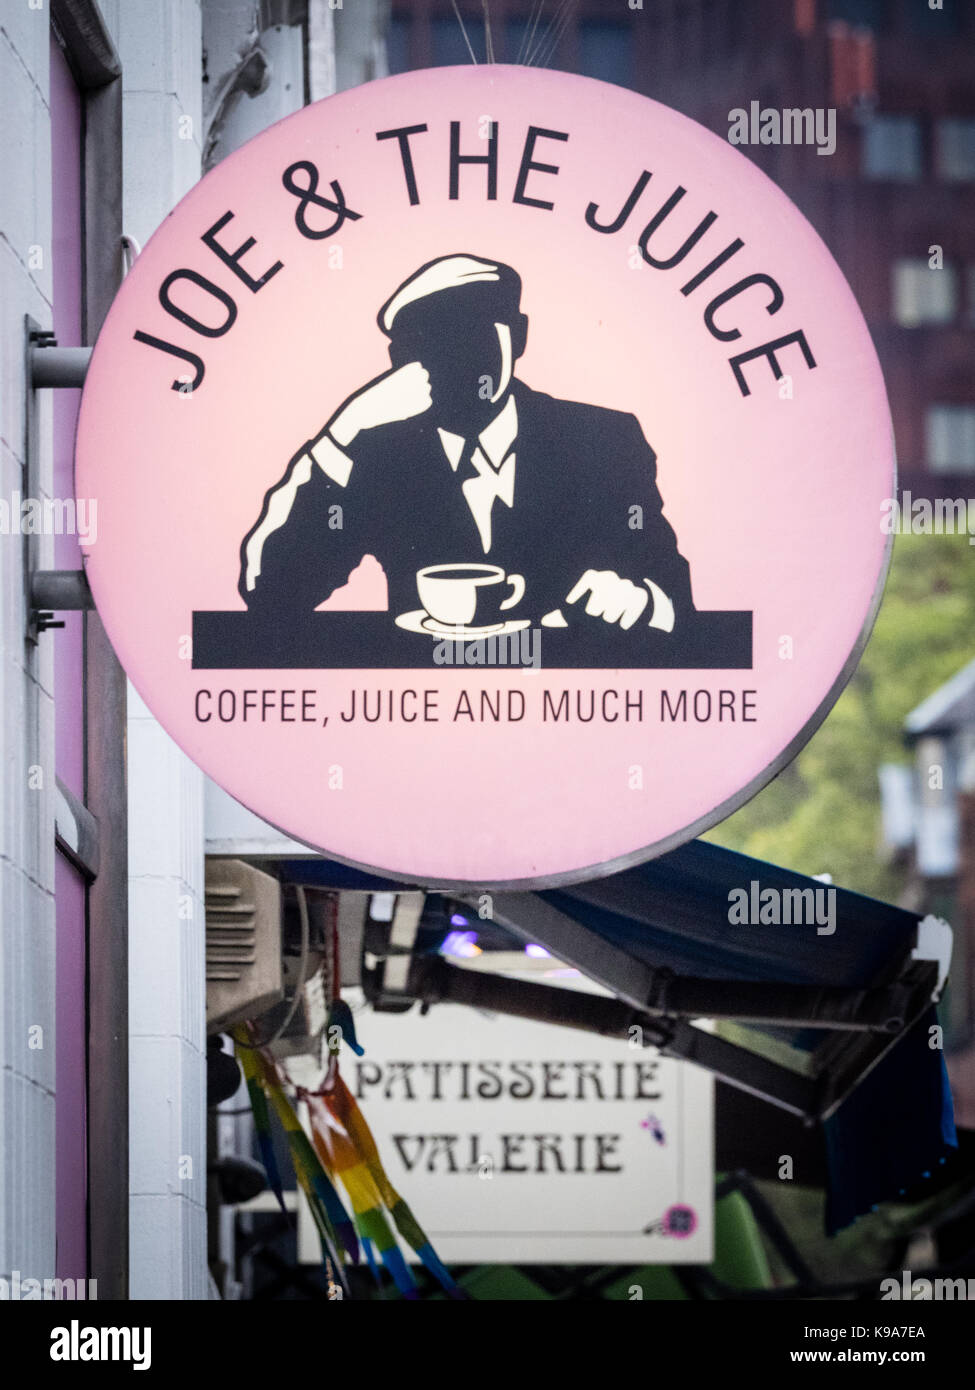 Joe and the Juice Cafe Restaurant Sign  in Old Compton Street, Soho, London, UK. Joe and the Juice is a chain originally - Stock Image